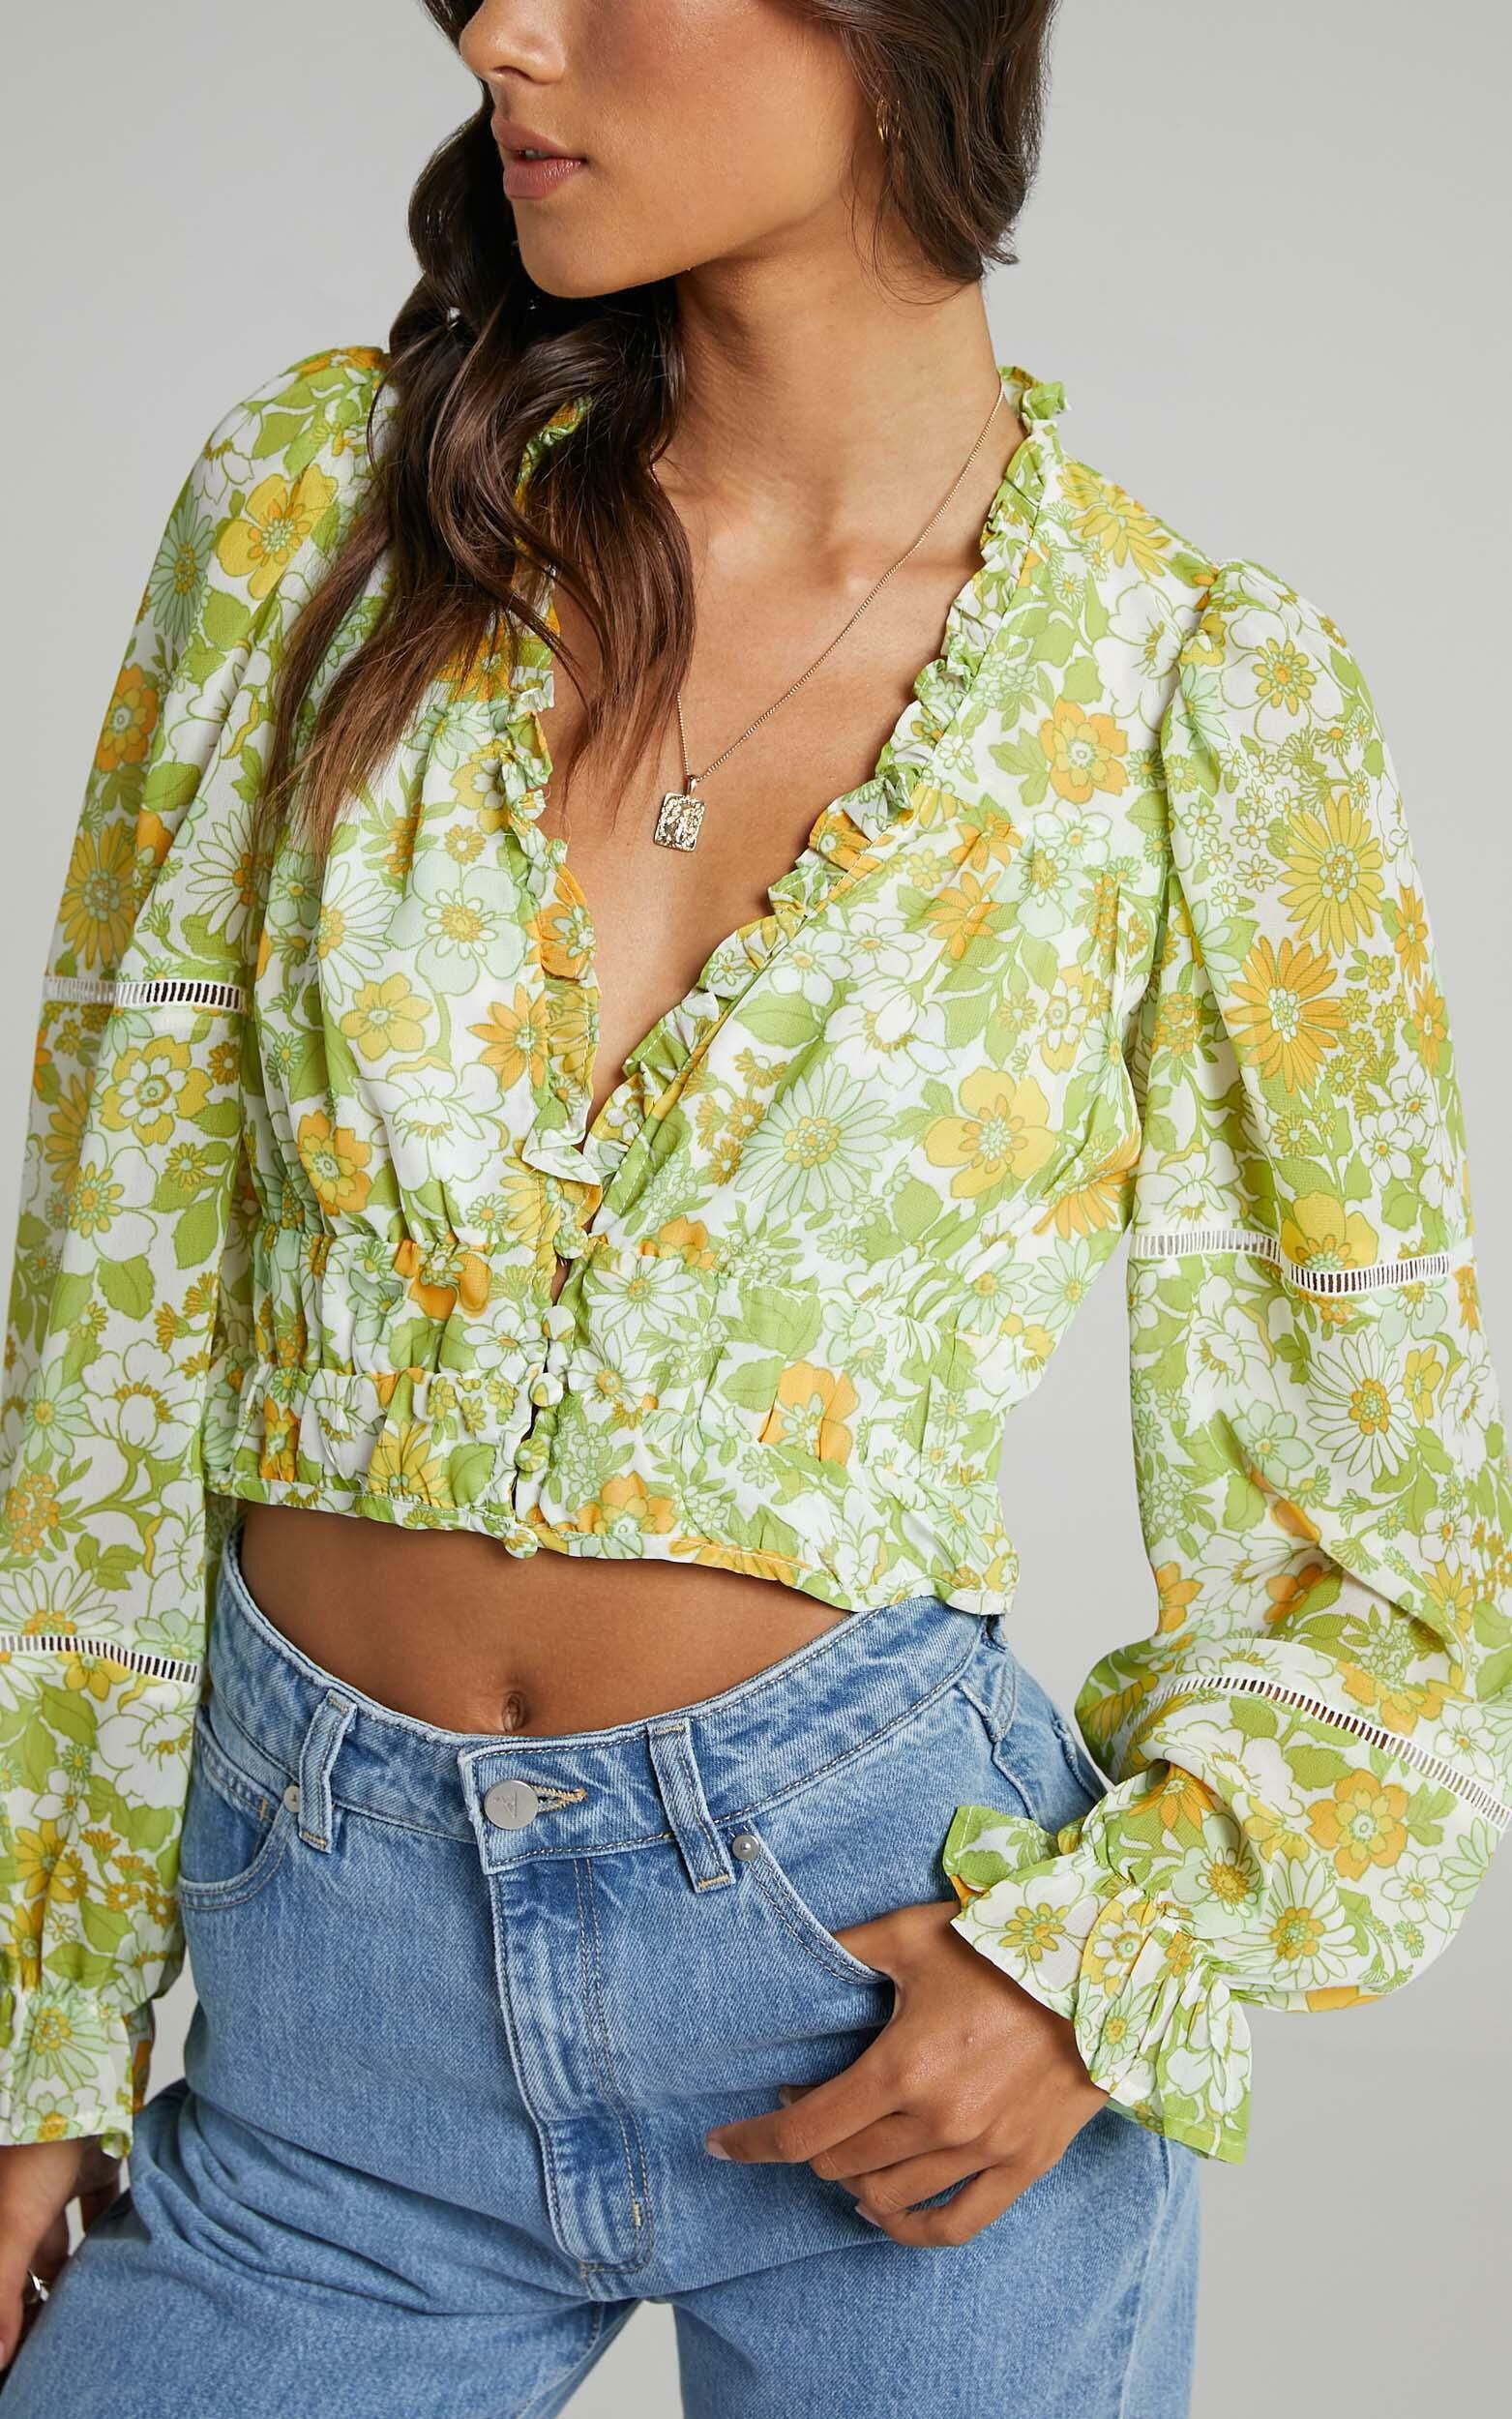 Eze Top in Harmony Floral Chiffon - 06, MLT1, super-hi-res image number null